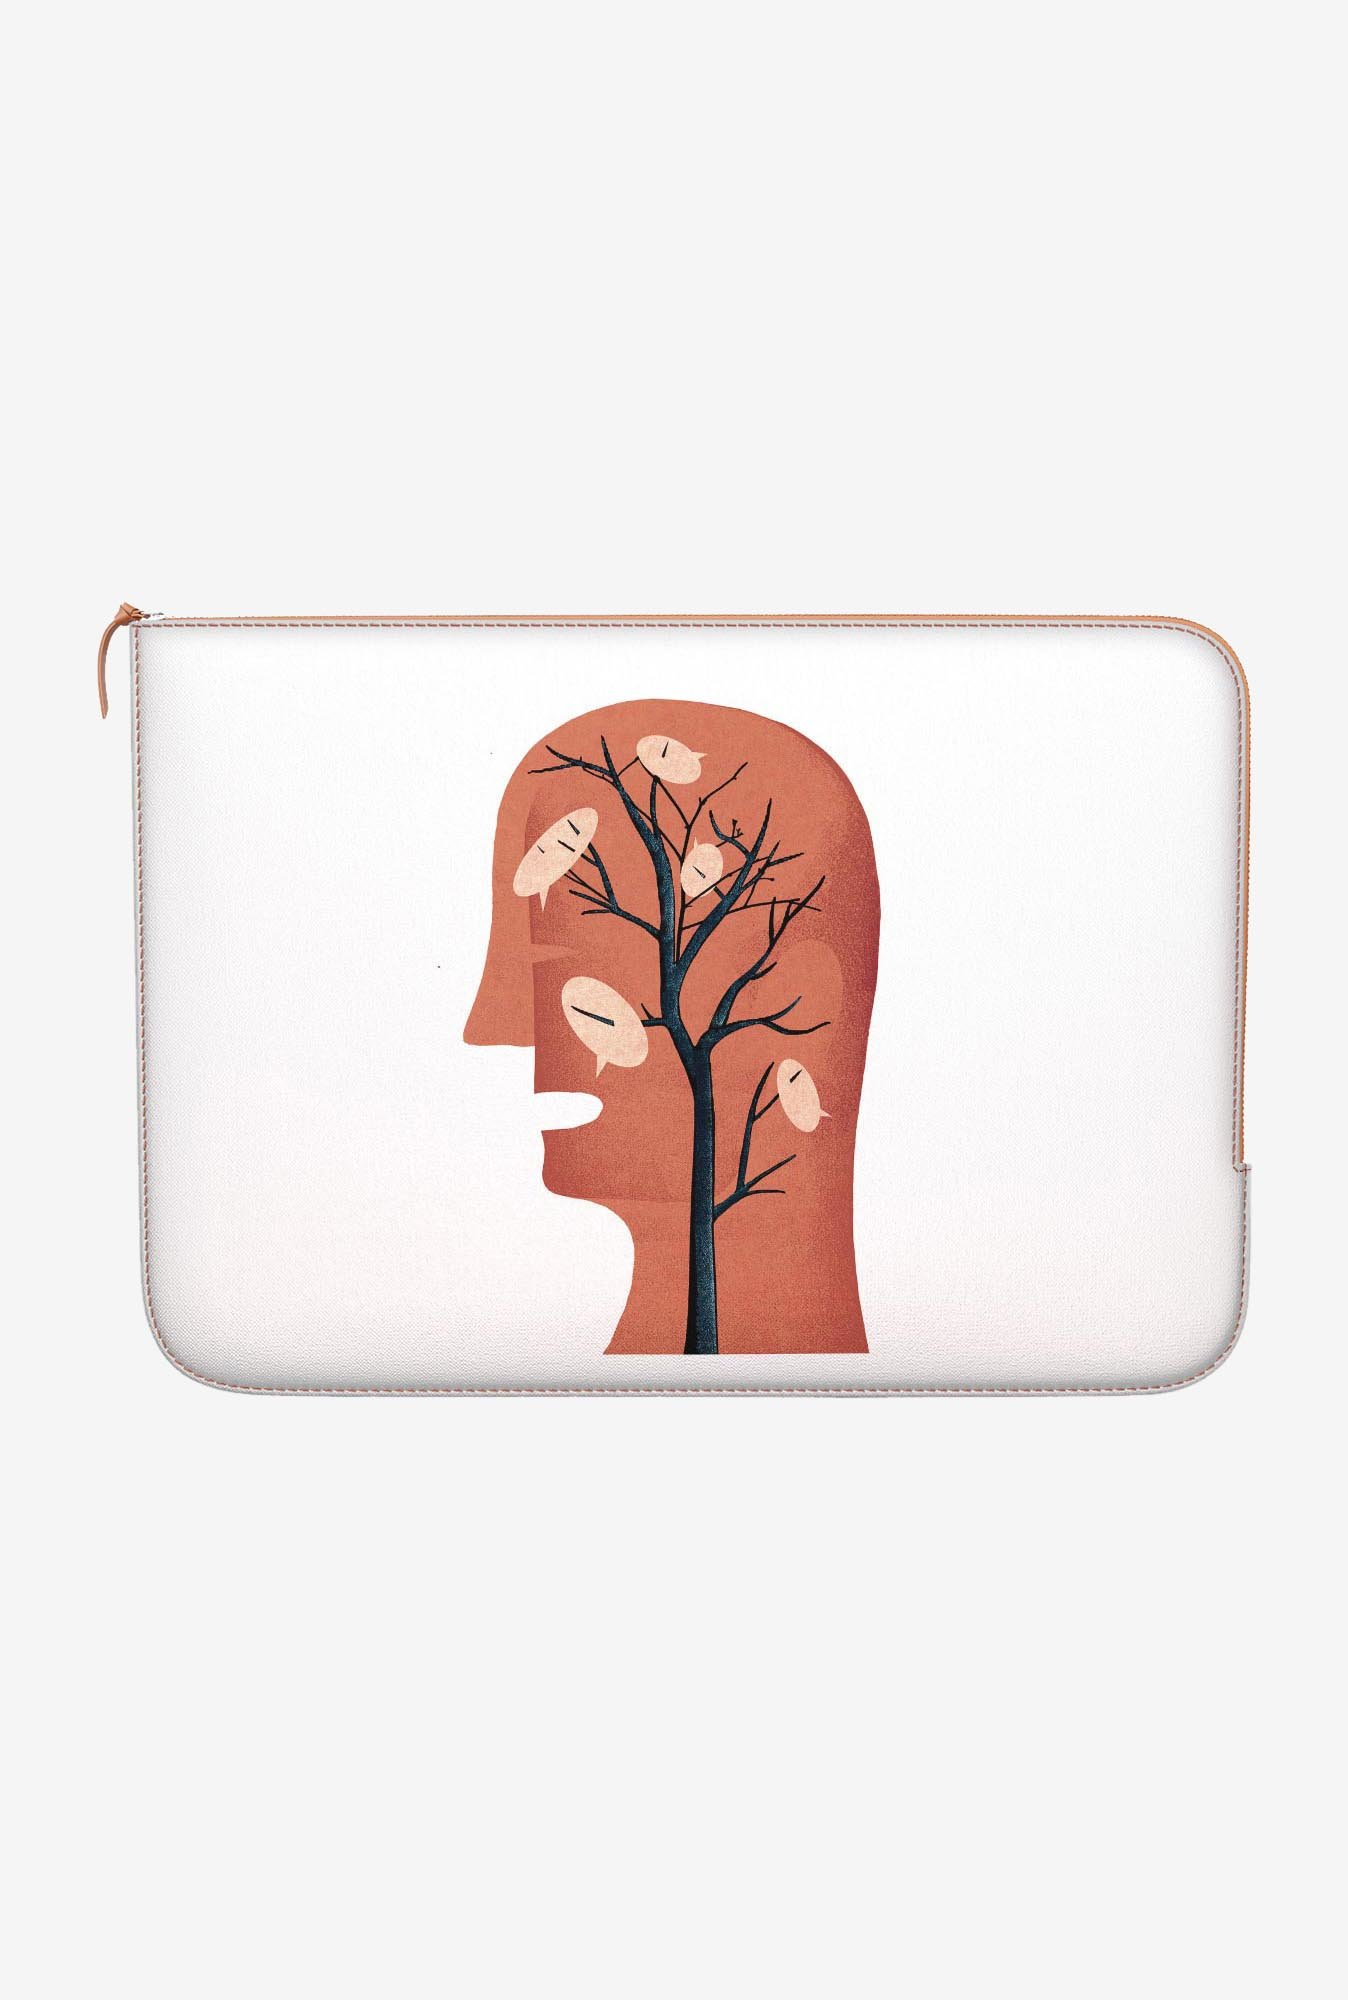 DailyObjects Unspoken Thought MacBook Pro 13 Zippered Sleeve